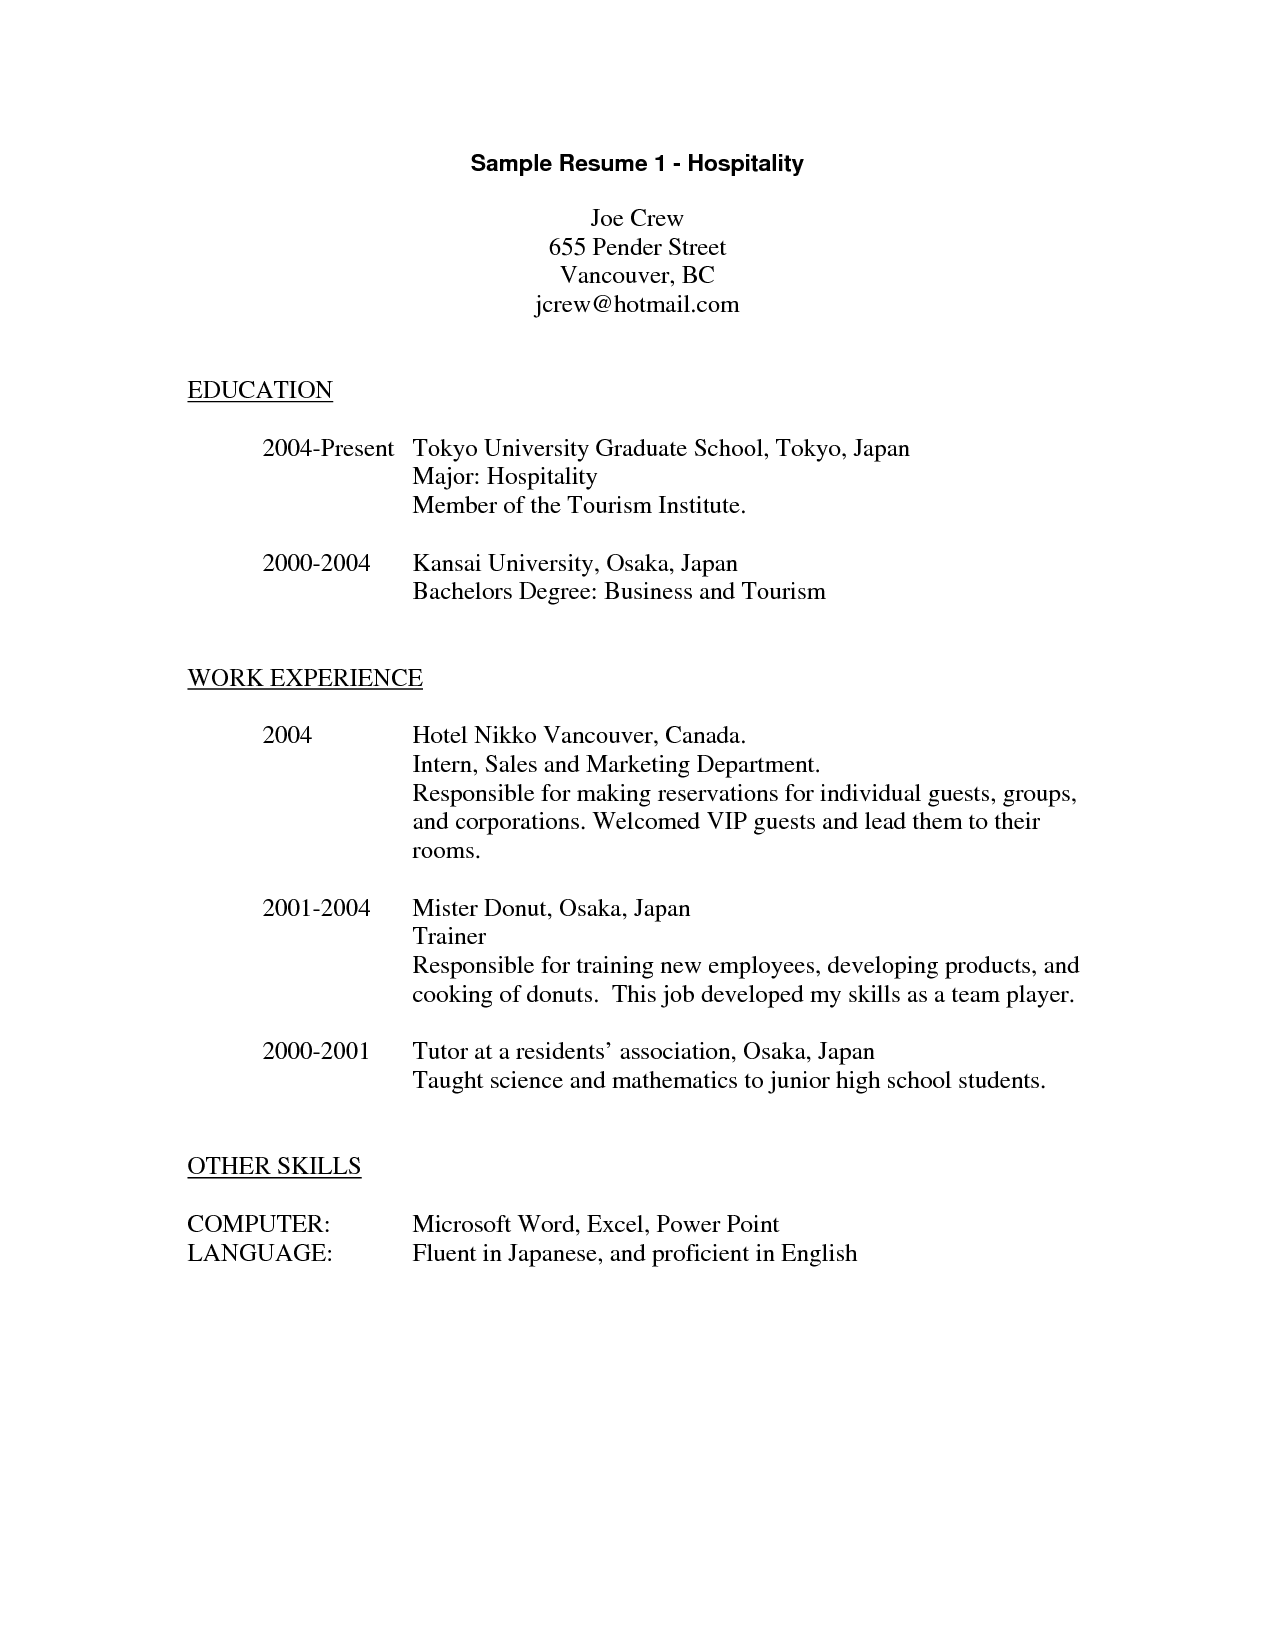 resume Sample Resume For Hotel Management sample resume for hospitality industry jobs sample